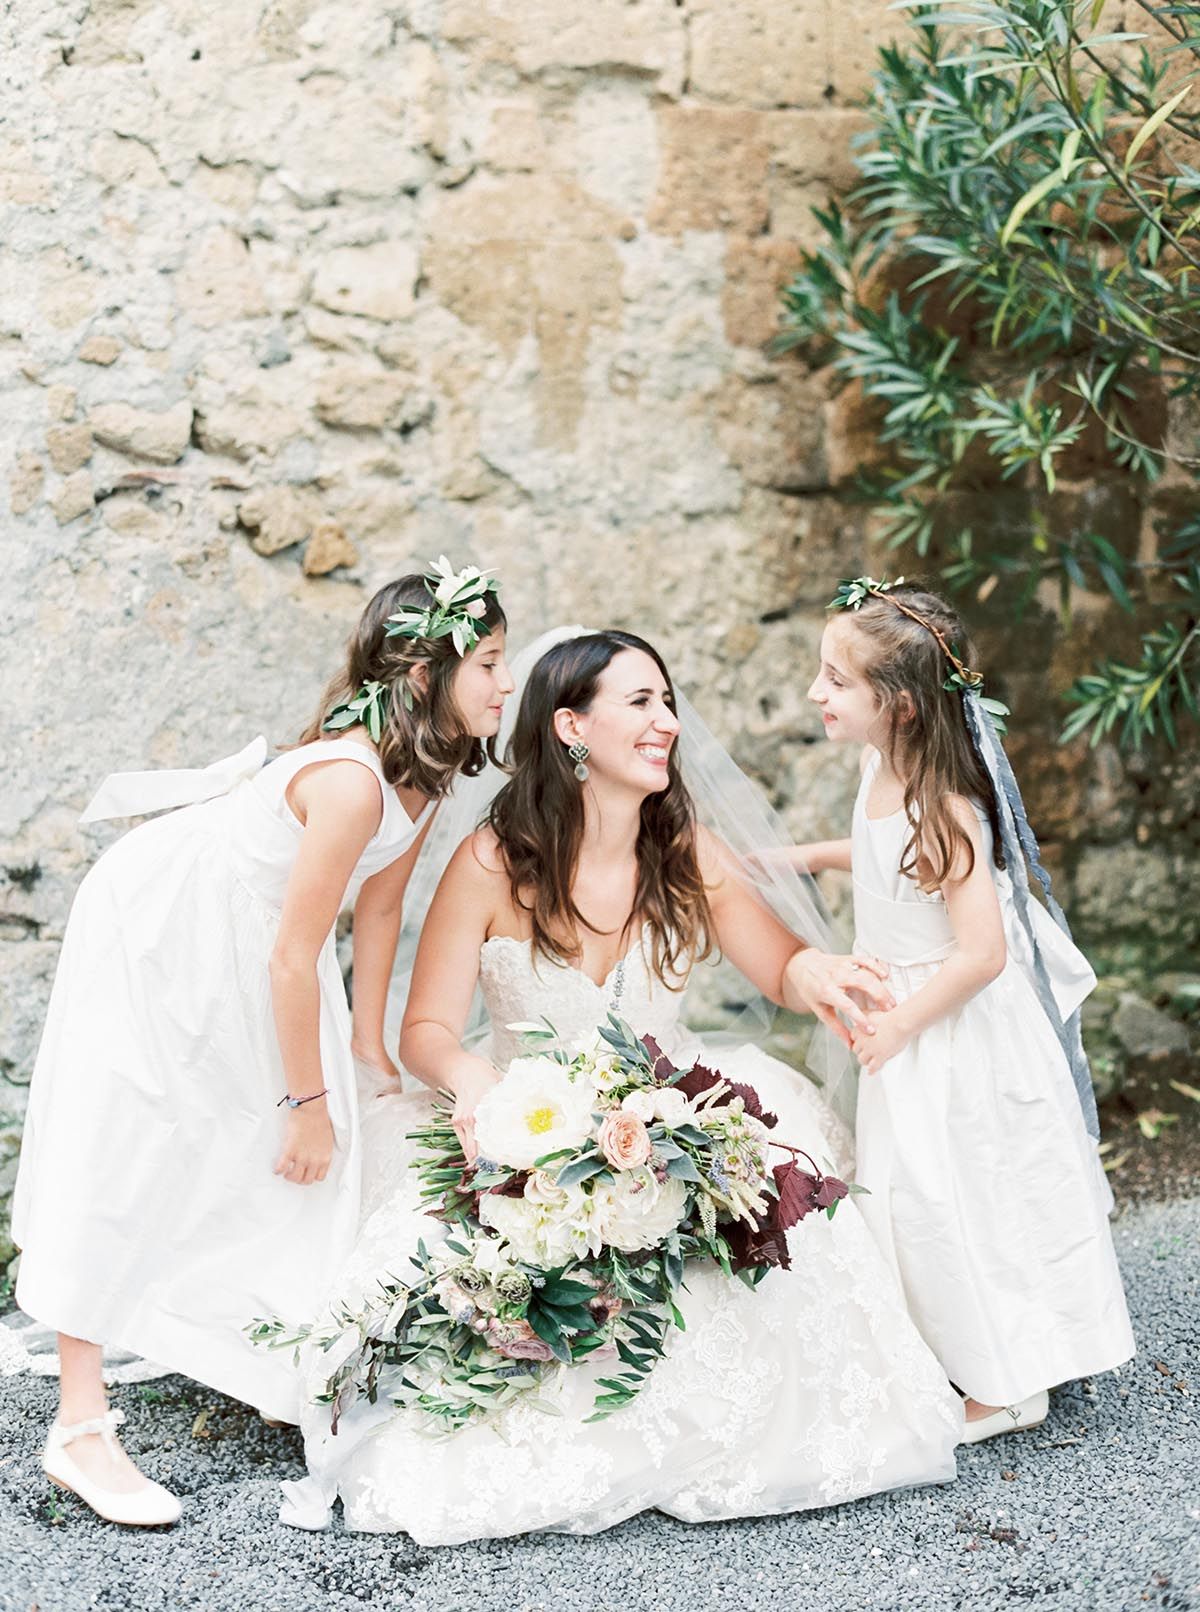 flowers-girls-for-a-Tuscany-Italy-wedding-with-olive-leaf-tiara-wreaths